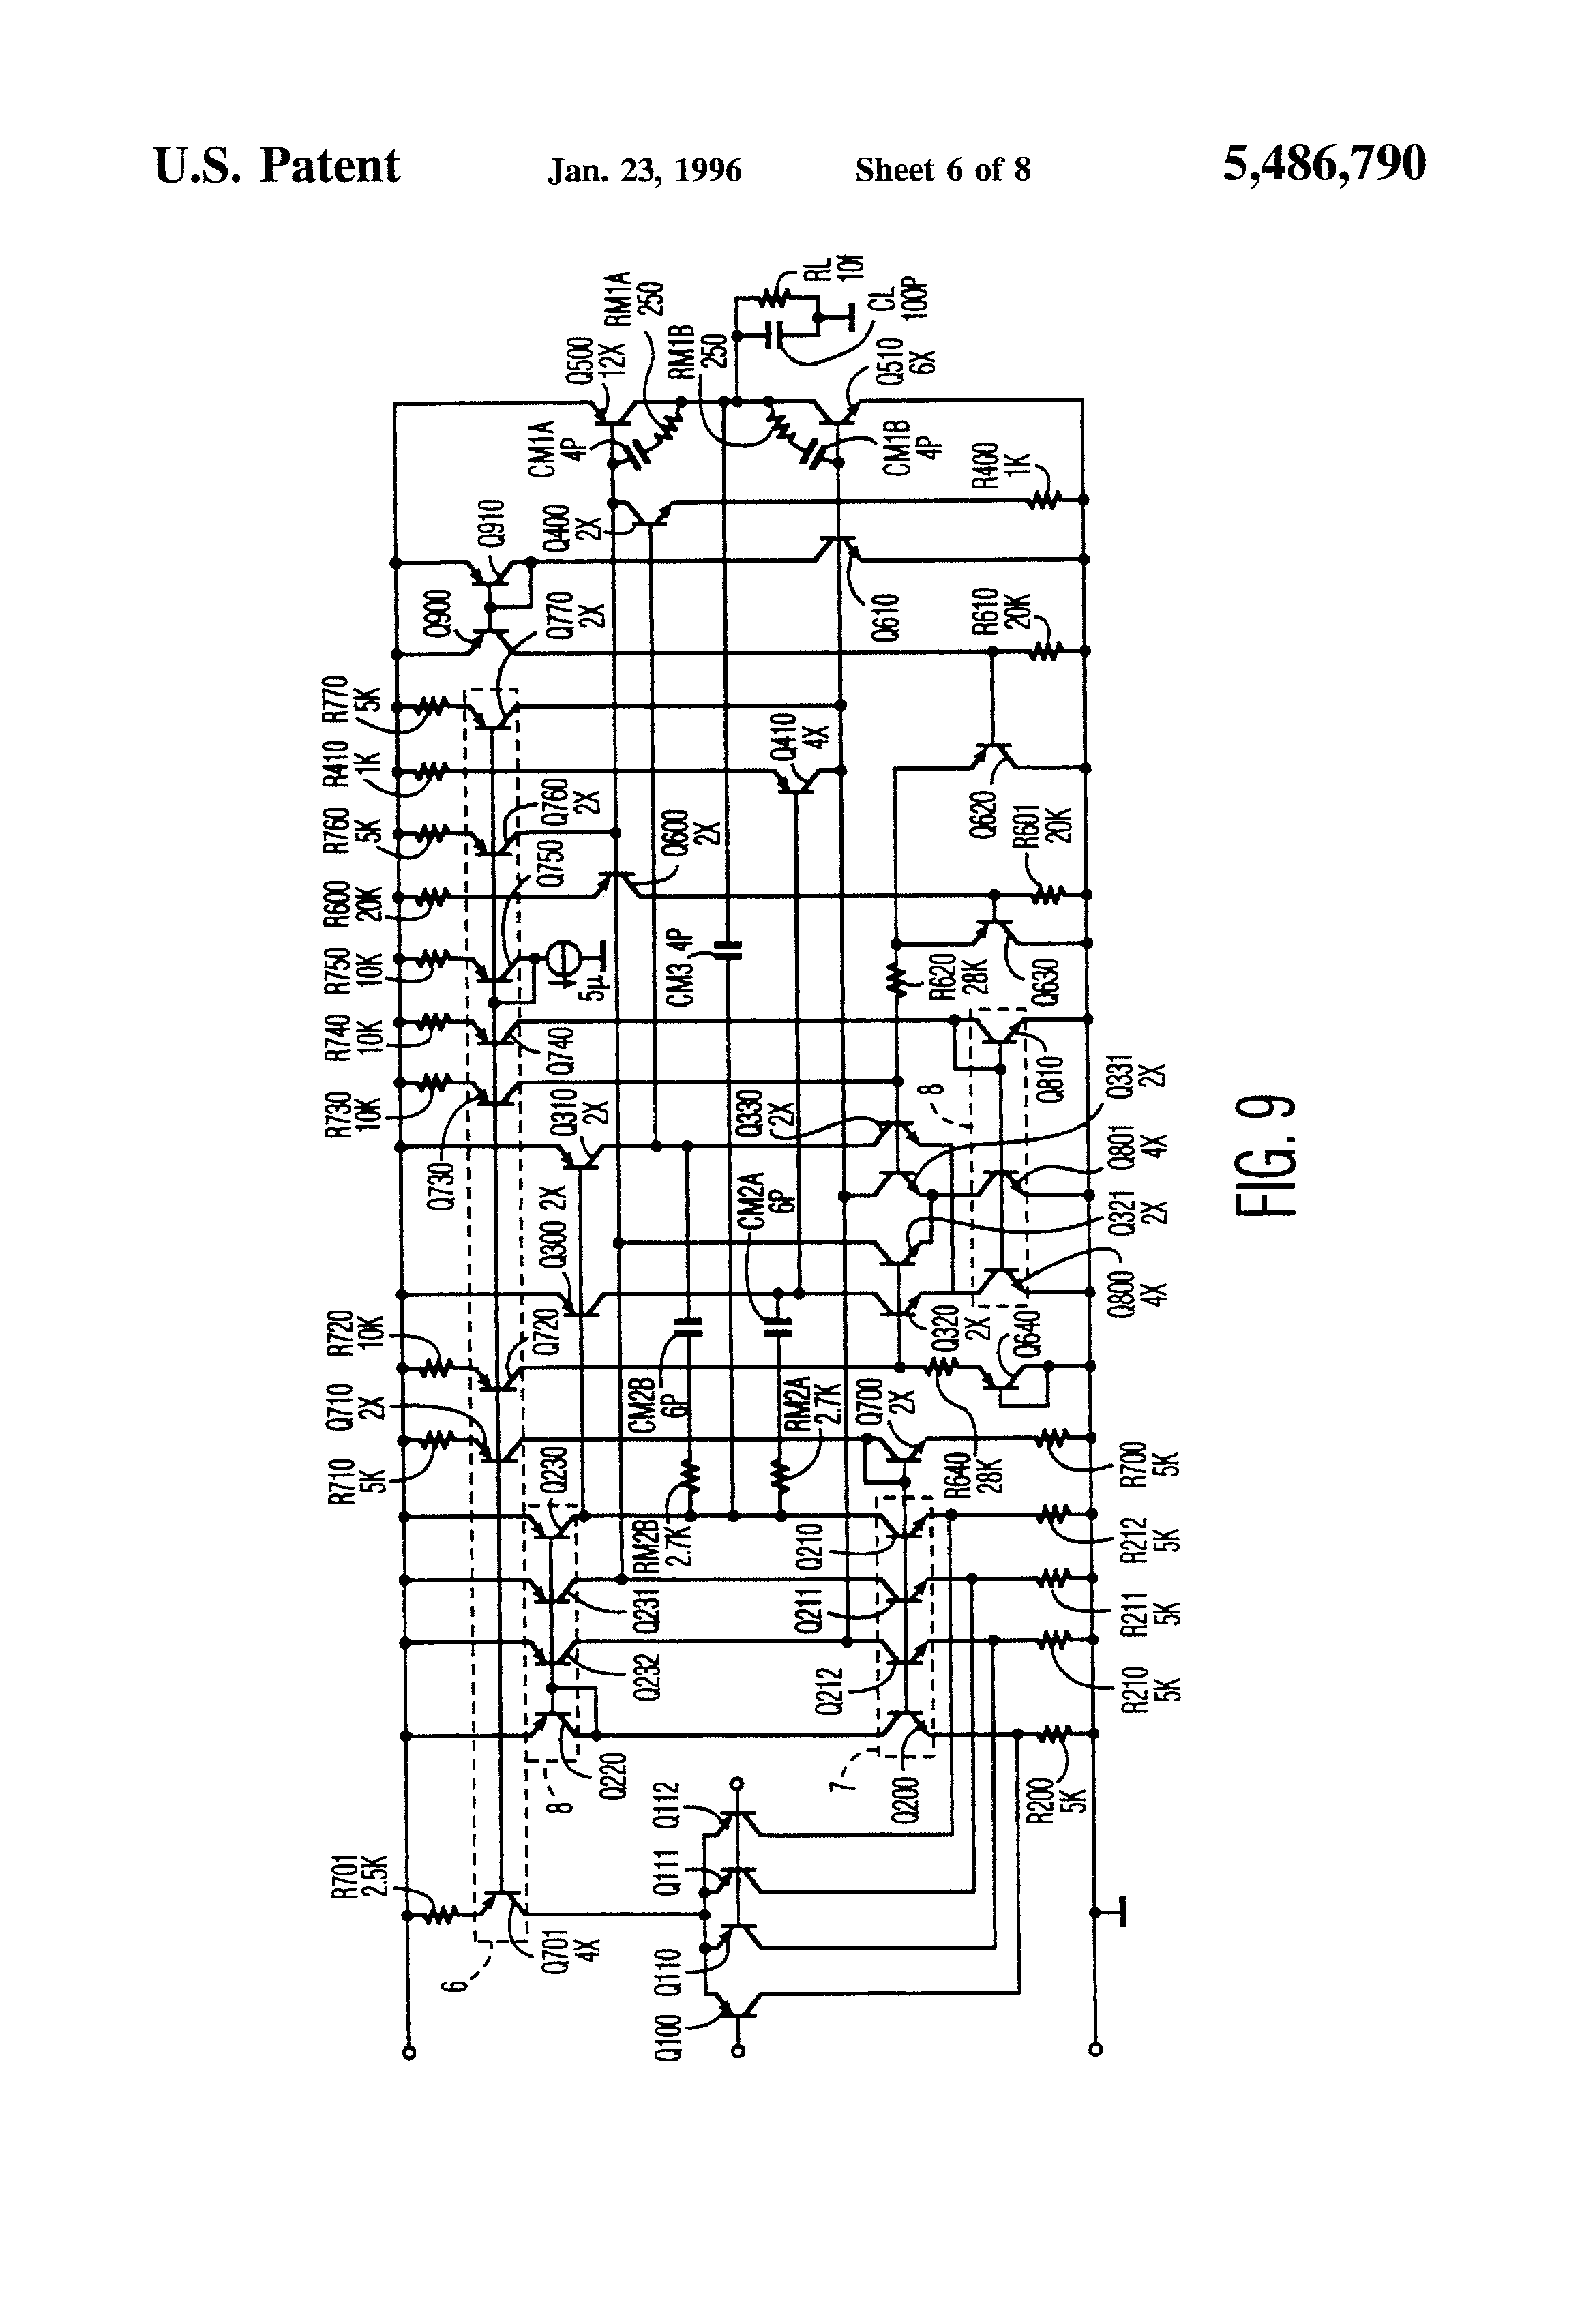 Patent Us5486790 Multistage Amplifier With Hybrid Nested Miller Simple Op Amp Inverting Circuit Employing Negative Drawing